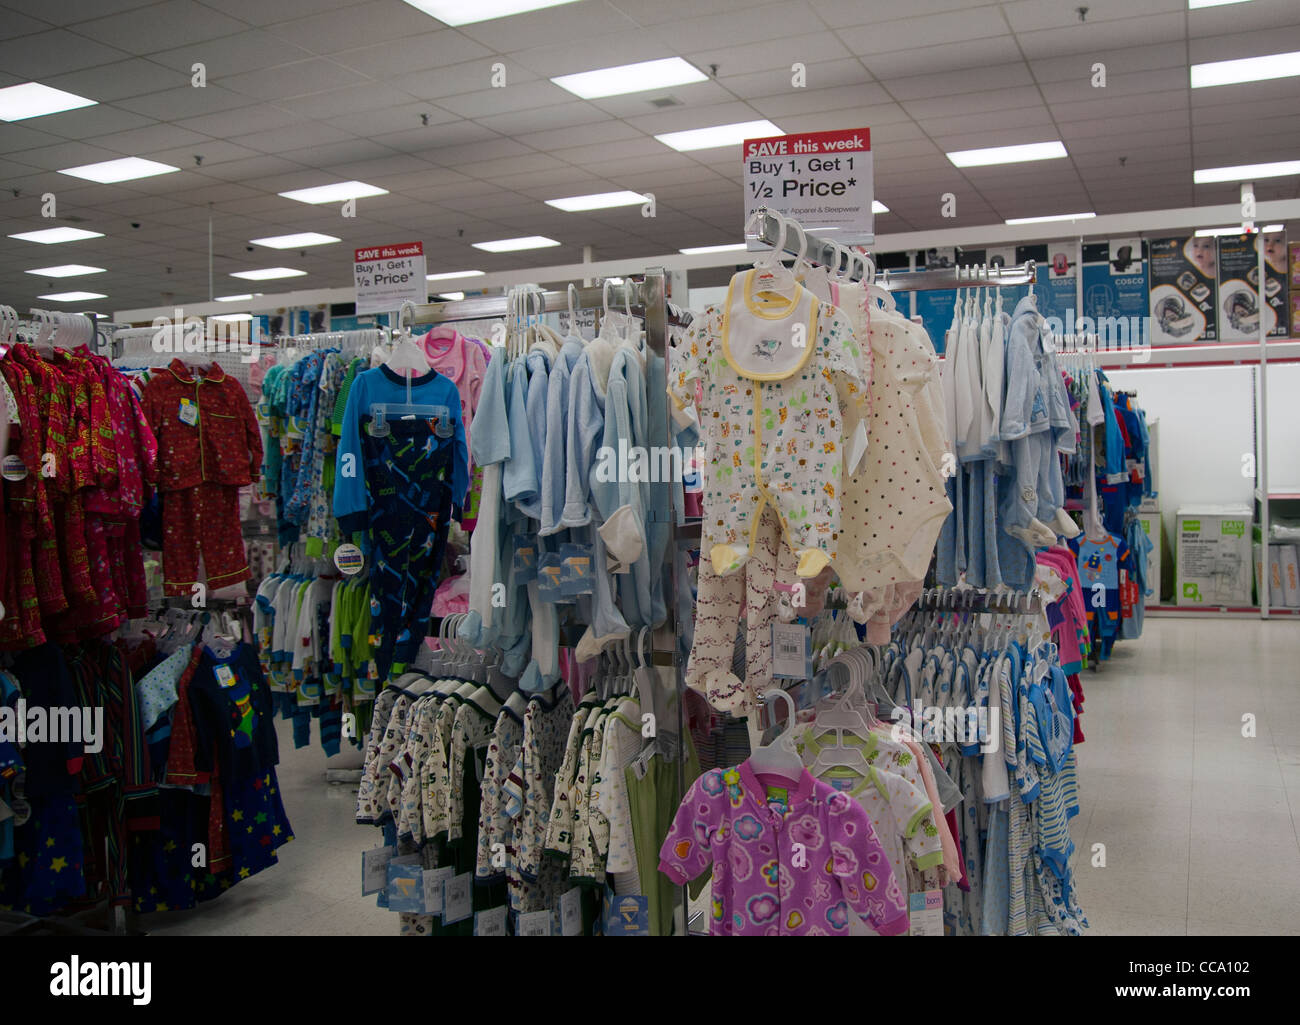 ef38efcd6dc Sale price on baby clothes shown on racks inside a department store - Stock  Image